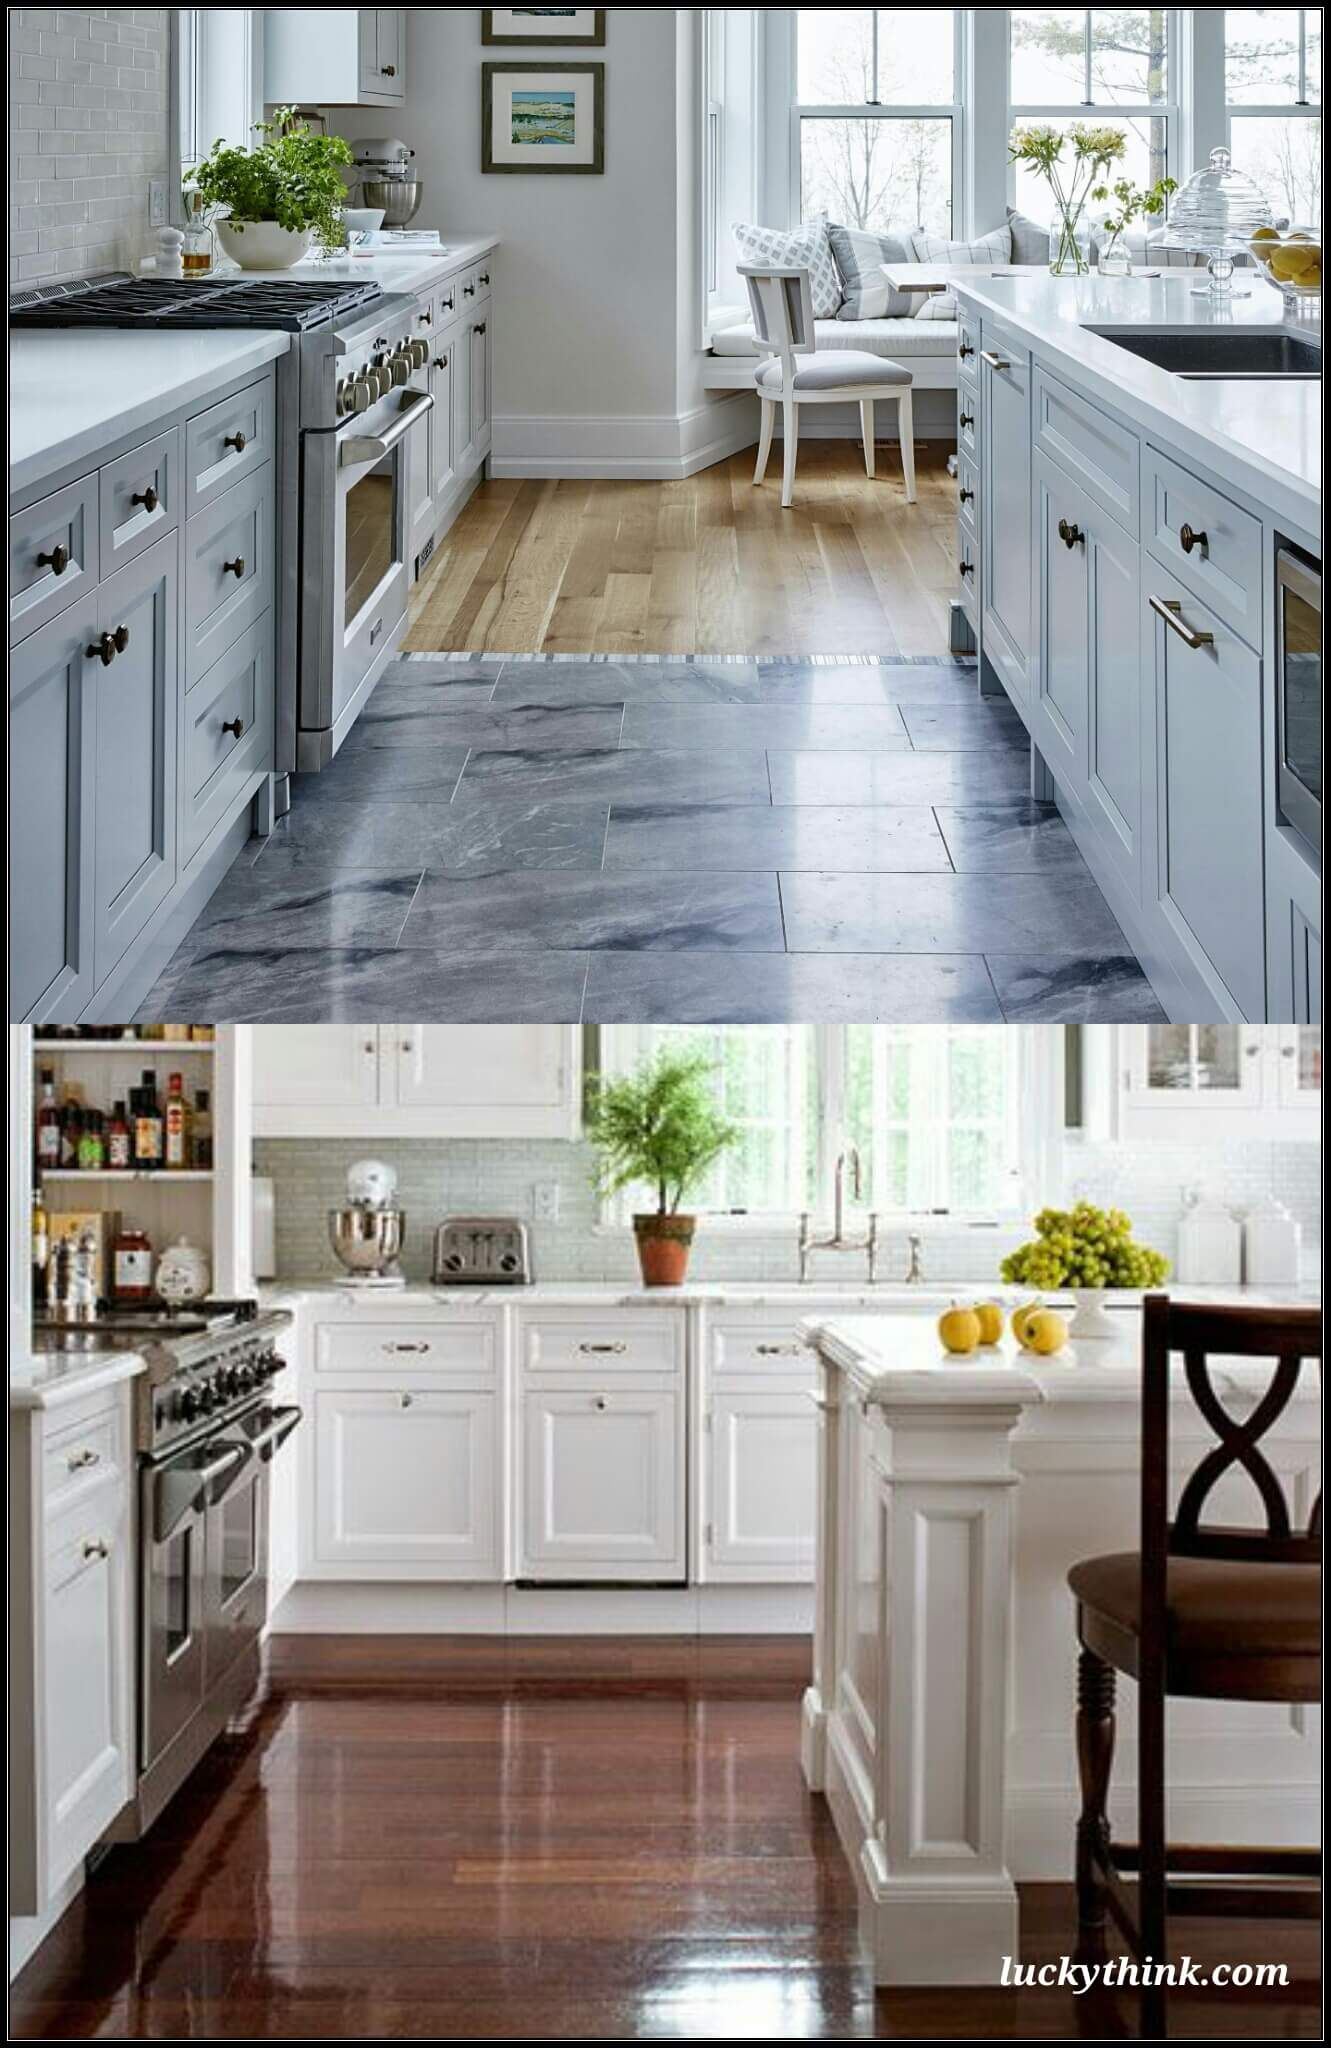 some examples of modern and traditional kitchen floor ideas kitchen flooring kitchen cabinets on kitchen flooring ideas id=22898